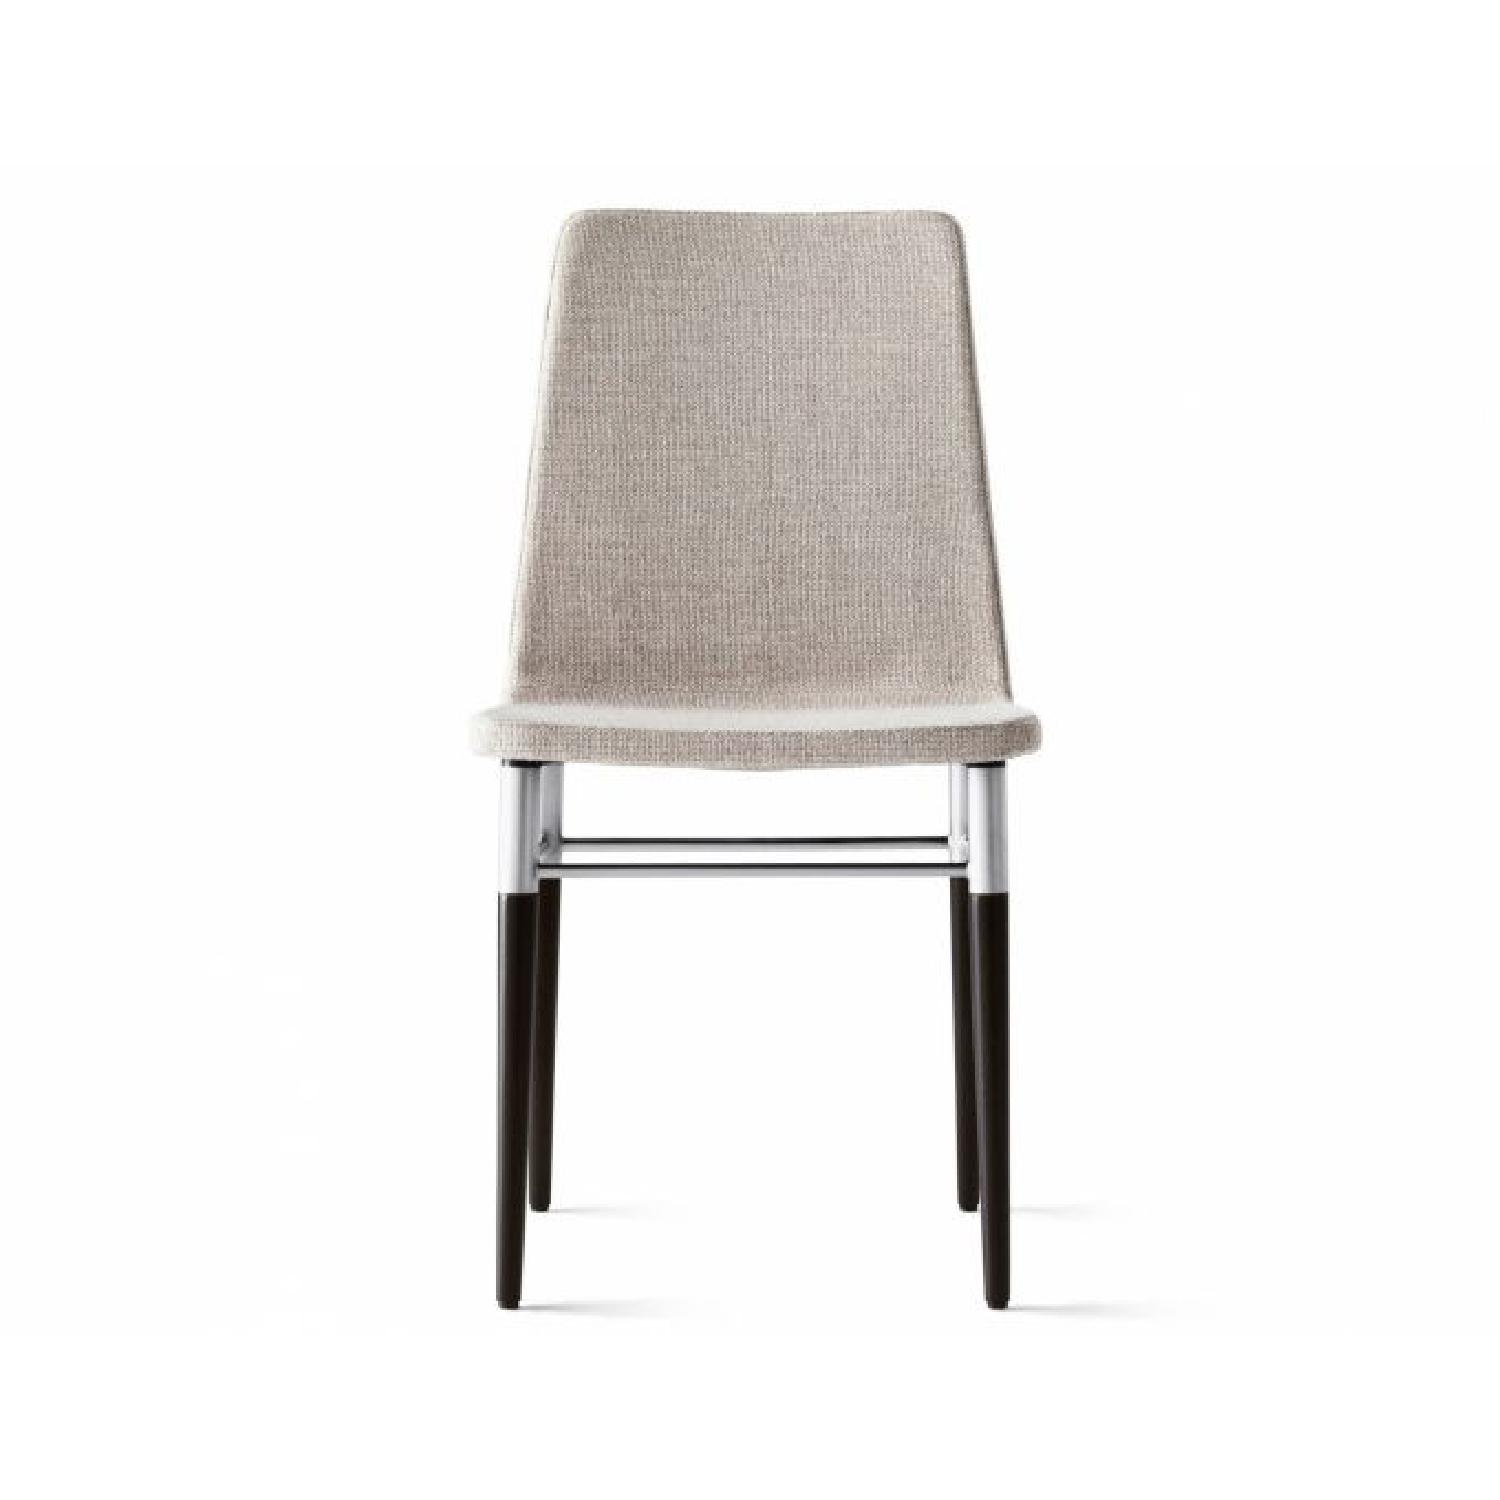 Ikea Preben Dining Chairs - image-2